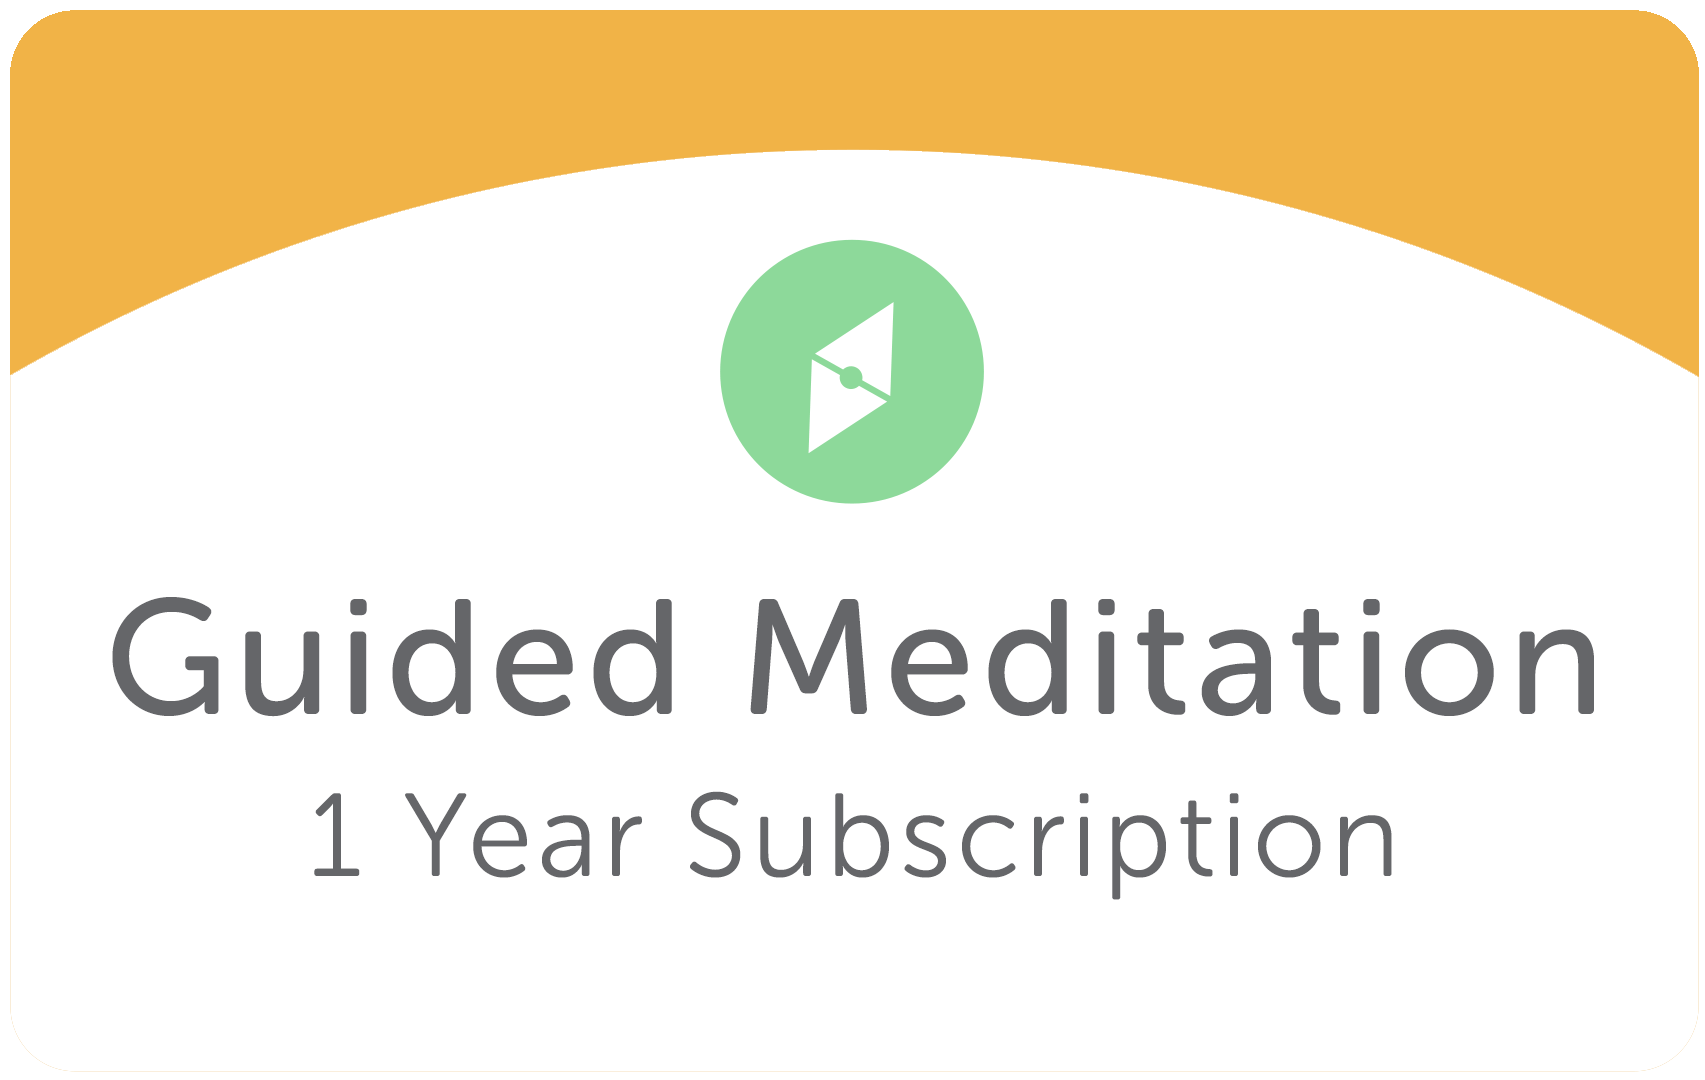 Add a 1 Year Guided Meditation Subscription